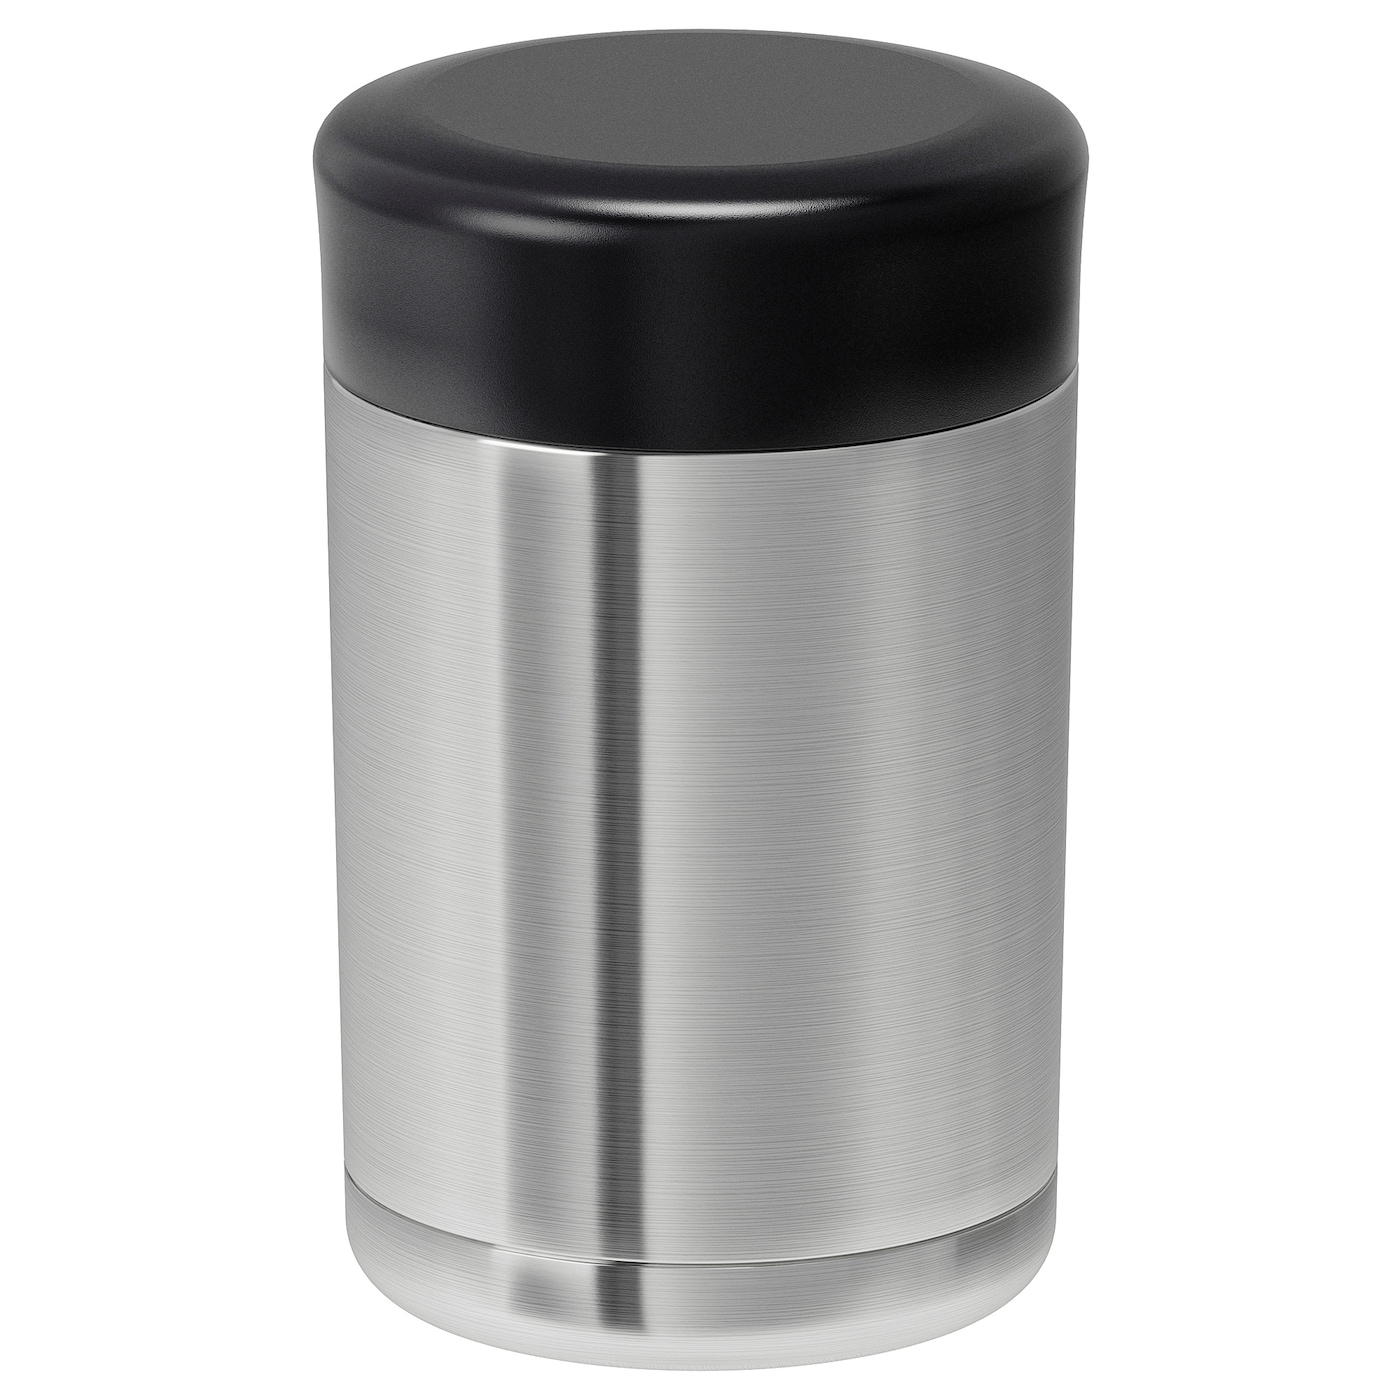 IKEA EFTERFRÅGAD food vacuum flask Can be used both for beverages and for food like soup.